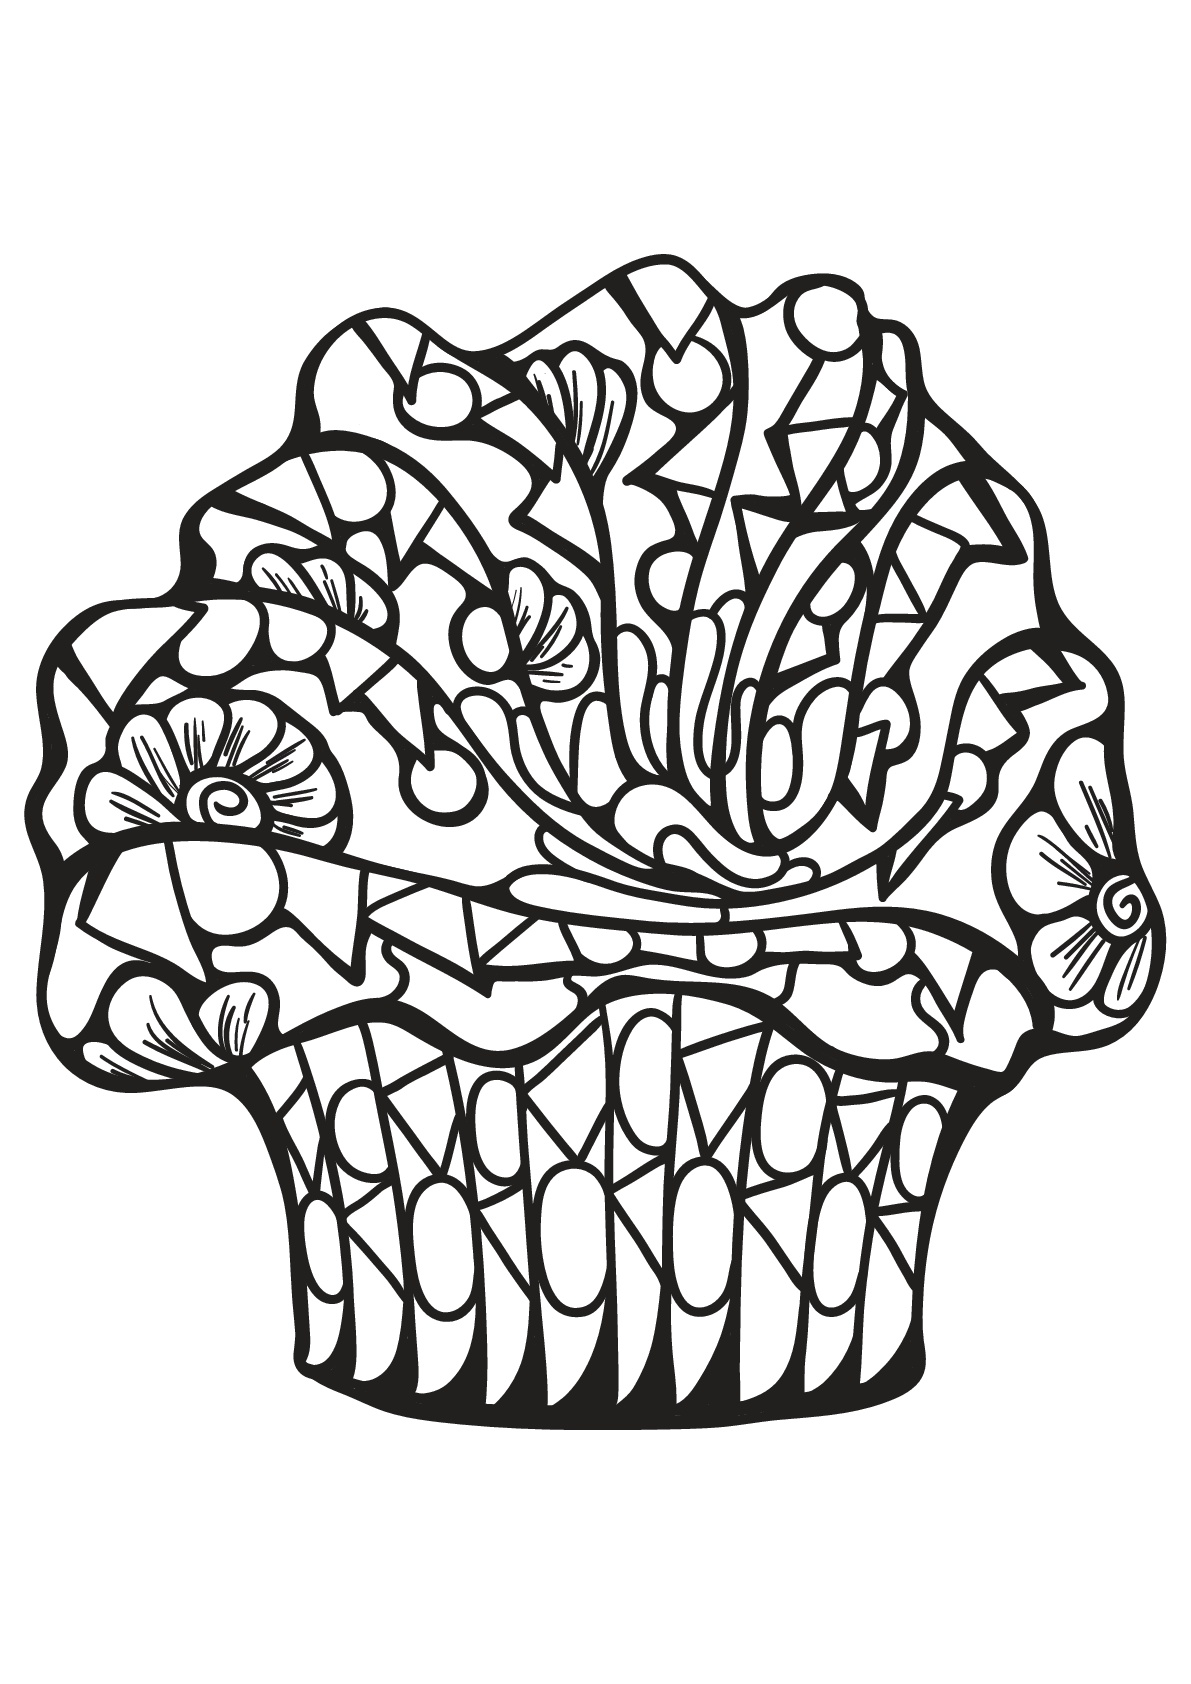 Cupcakes and cakes for children - Cupcakes And Cakes Kids Coloring Pages